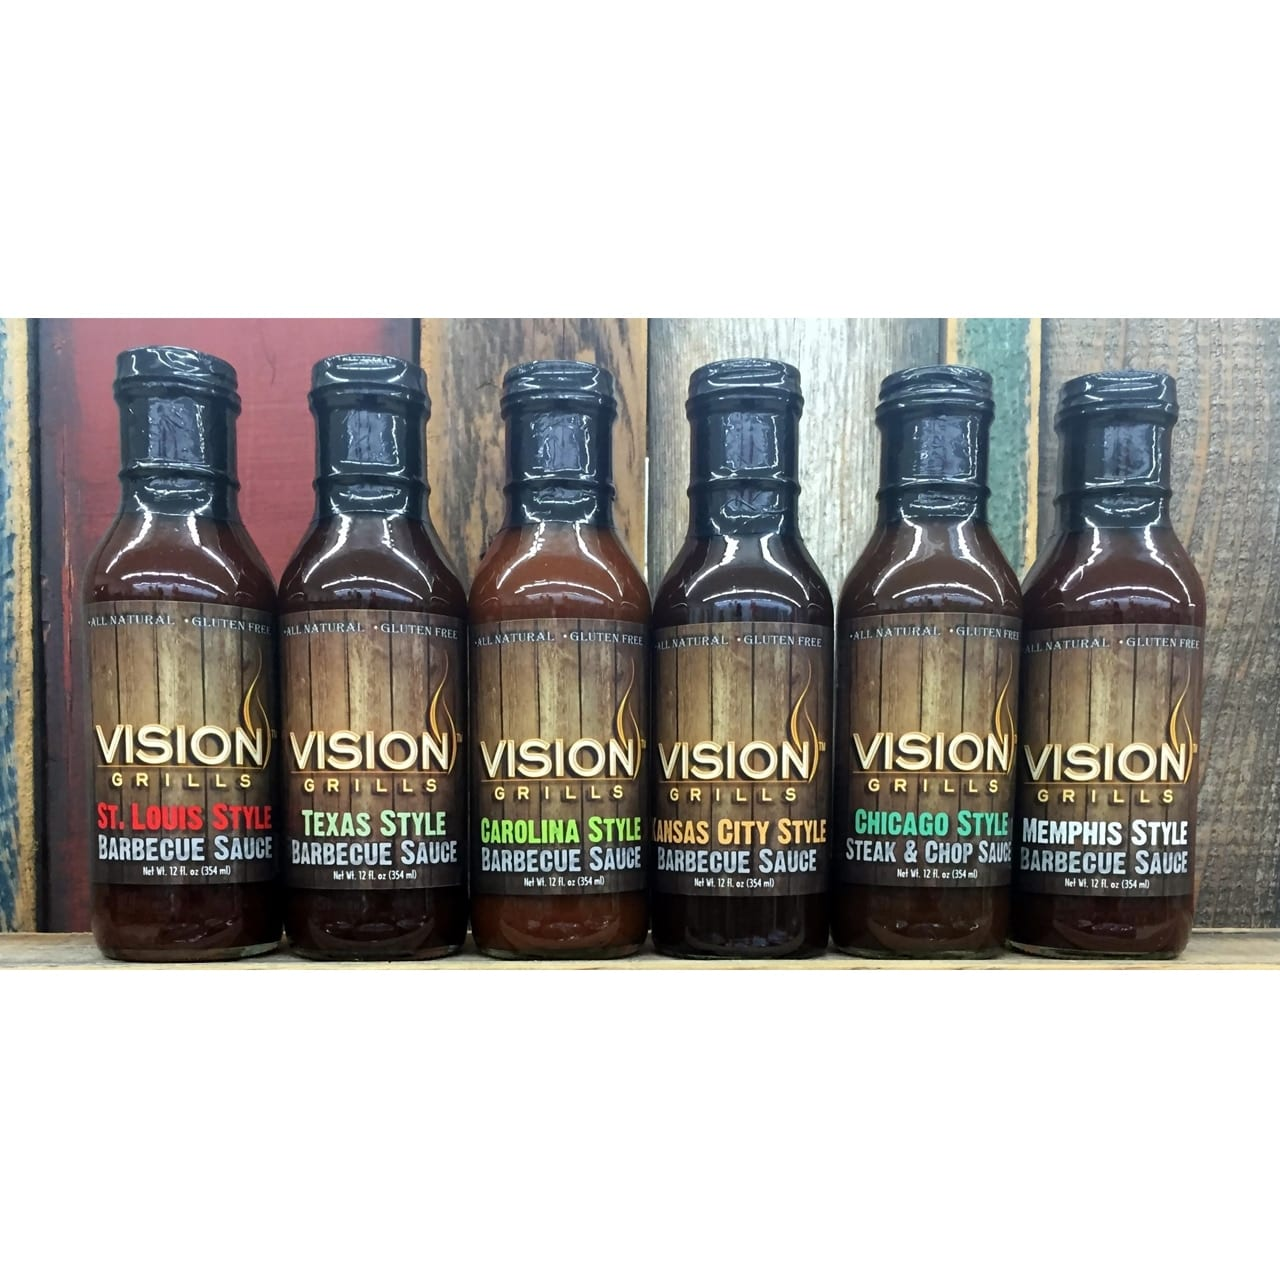 Vision Grill Chicago Style Steak & Chop Sauce Line up